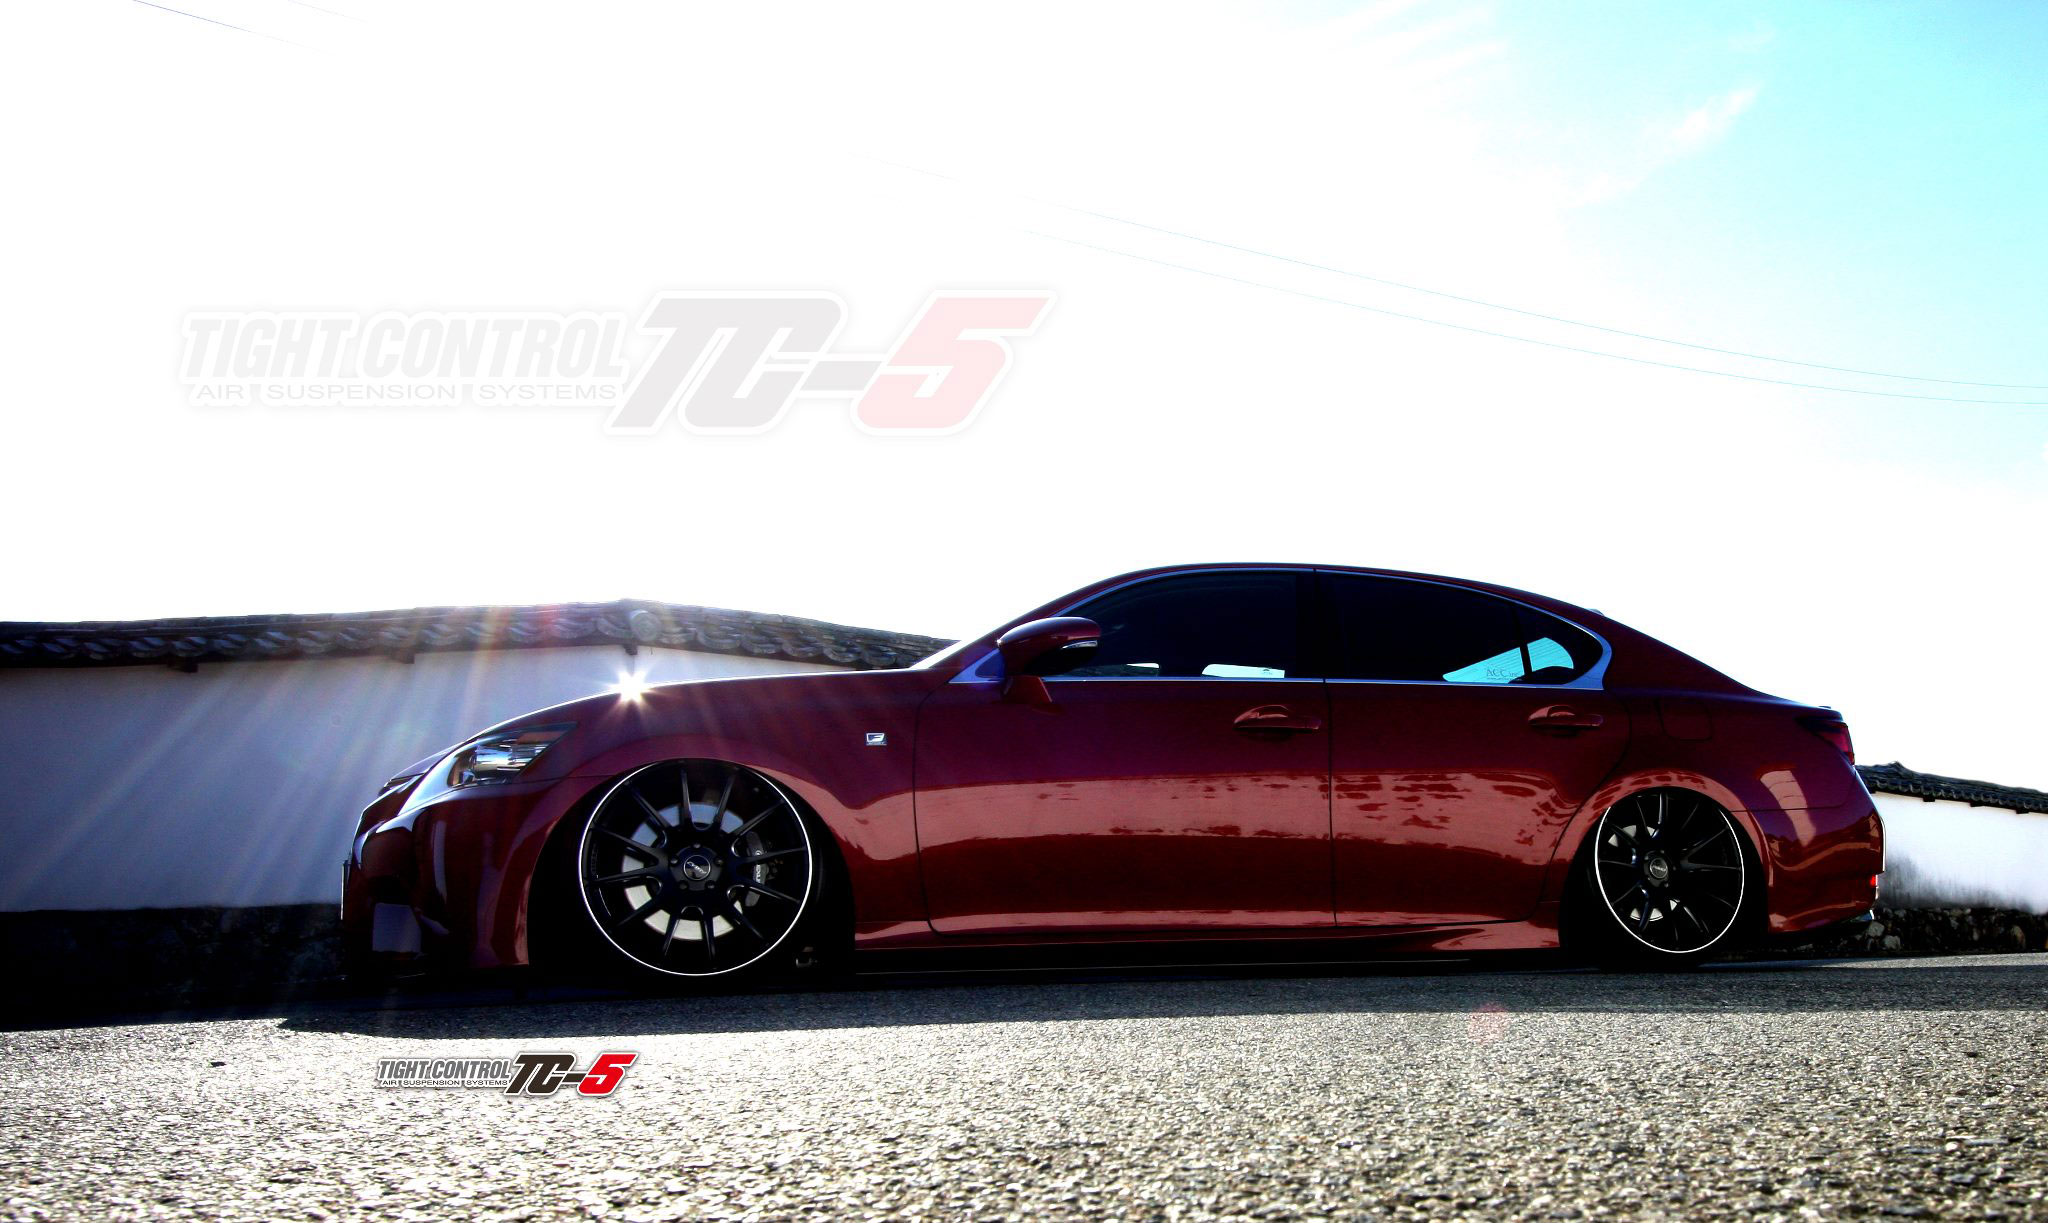 Slammed Lexus Gs With Air Suspension Lexus Enthusiast